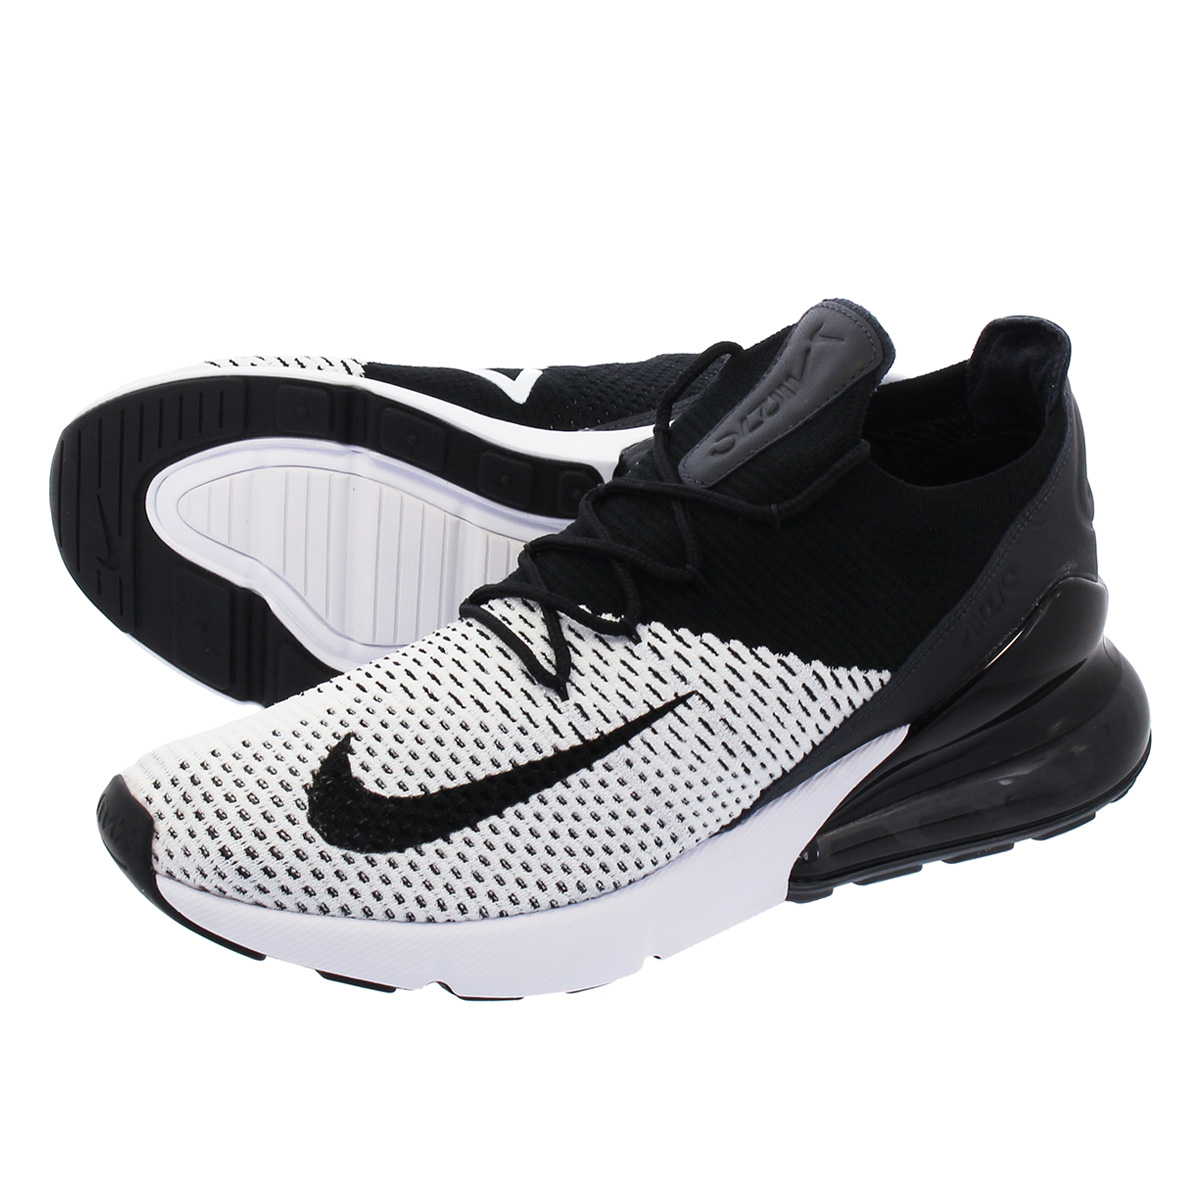 Nike Air Max 270 Flyknit Black Anthracite Black | Footshop